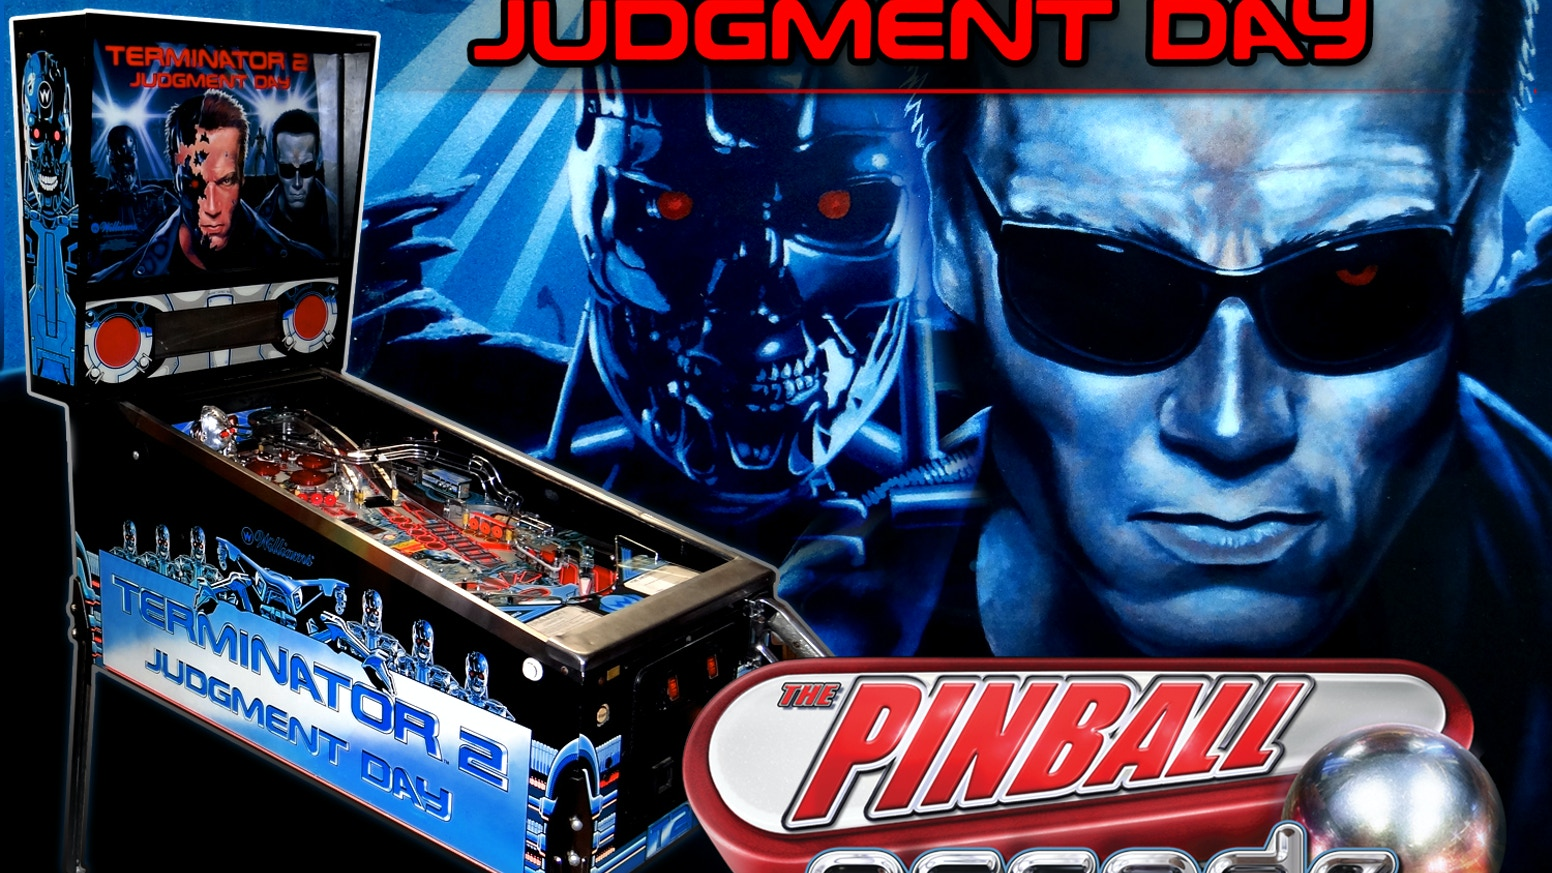 pinball arcade terminator 2 judgment day by farsight studios